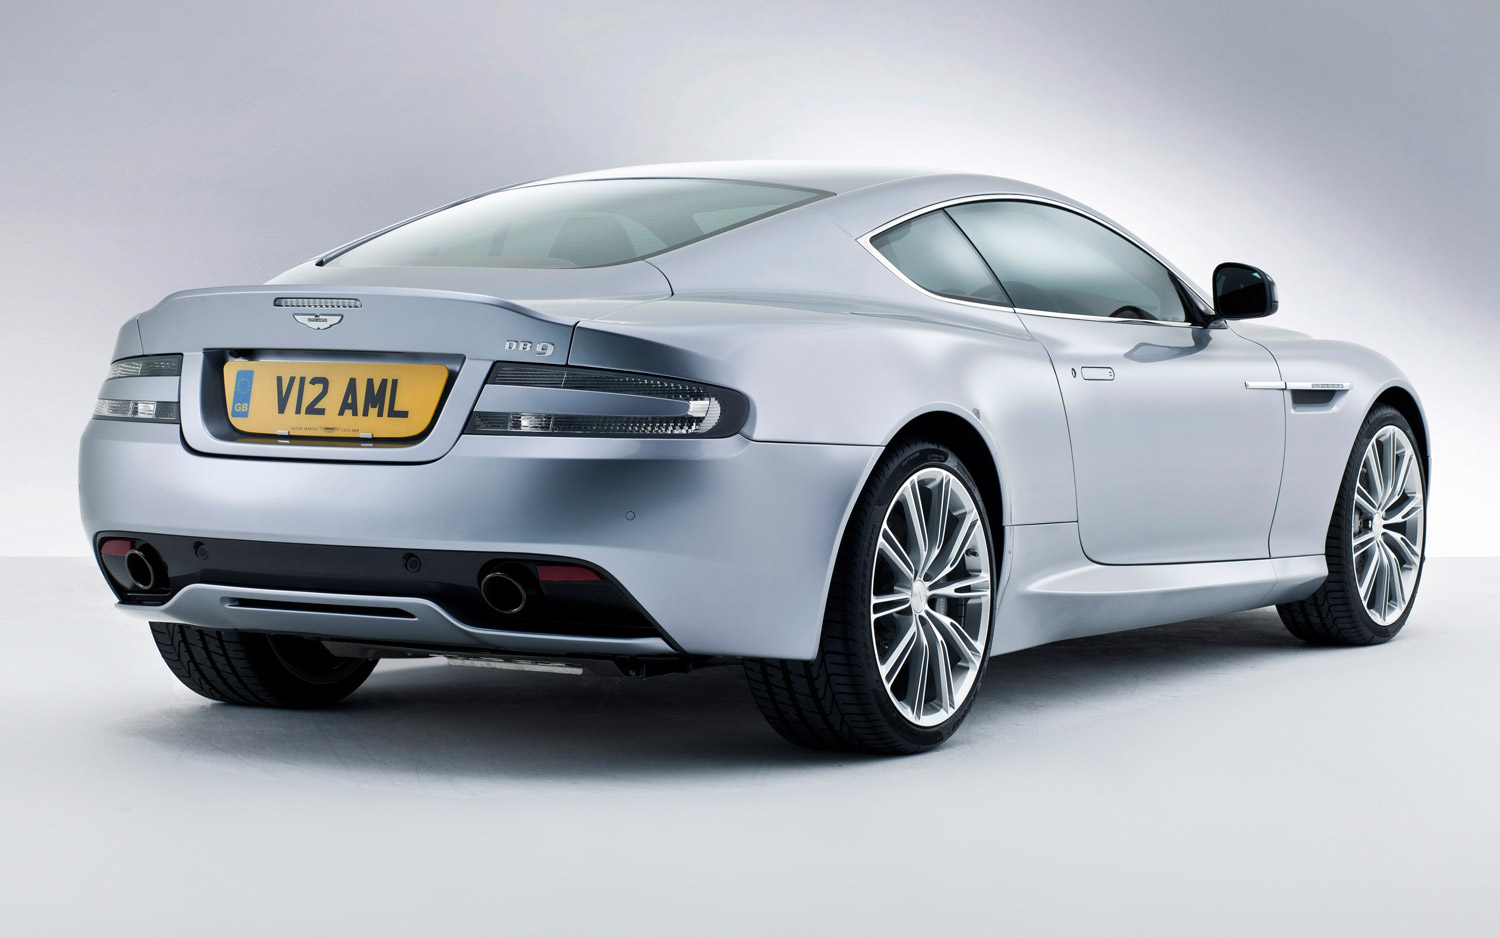 2013 Aston Martin DB9 Coupe Wallpaper Gallery